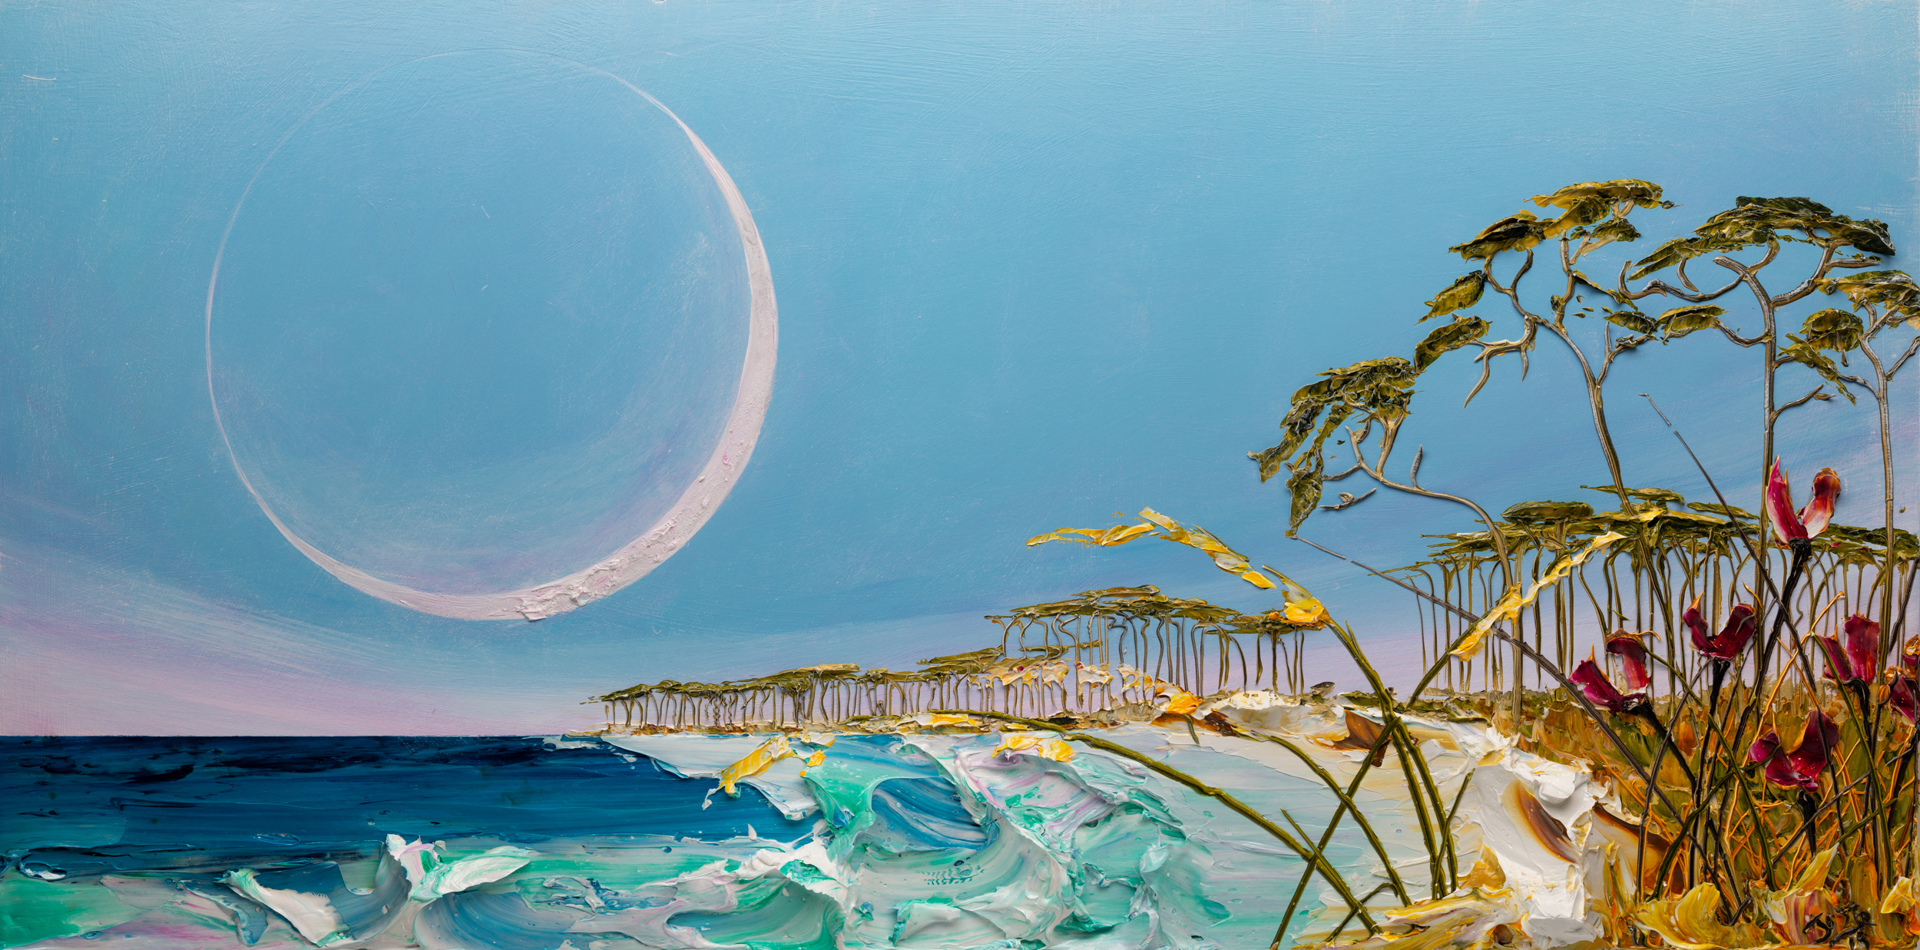 (SOLD) SUNRISE MOONSCAPE-MS-60x30-2019-229 by JUSTIN GAFFREY